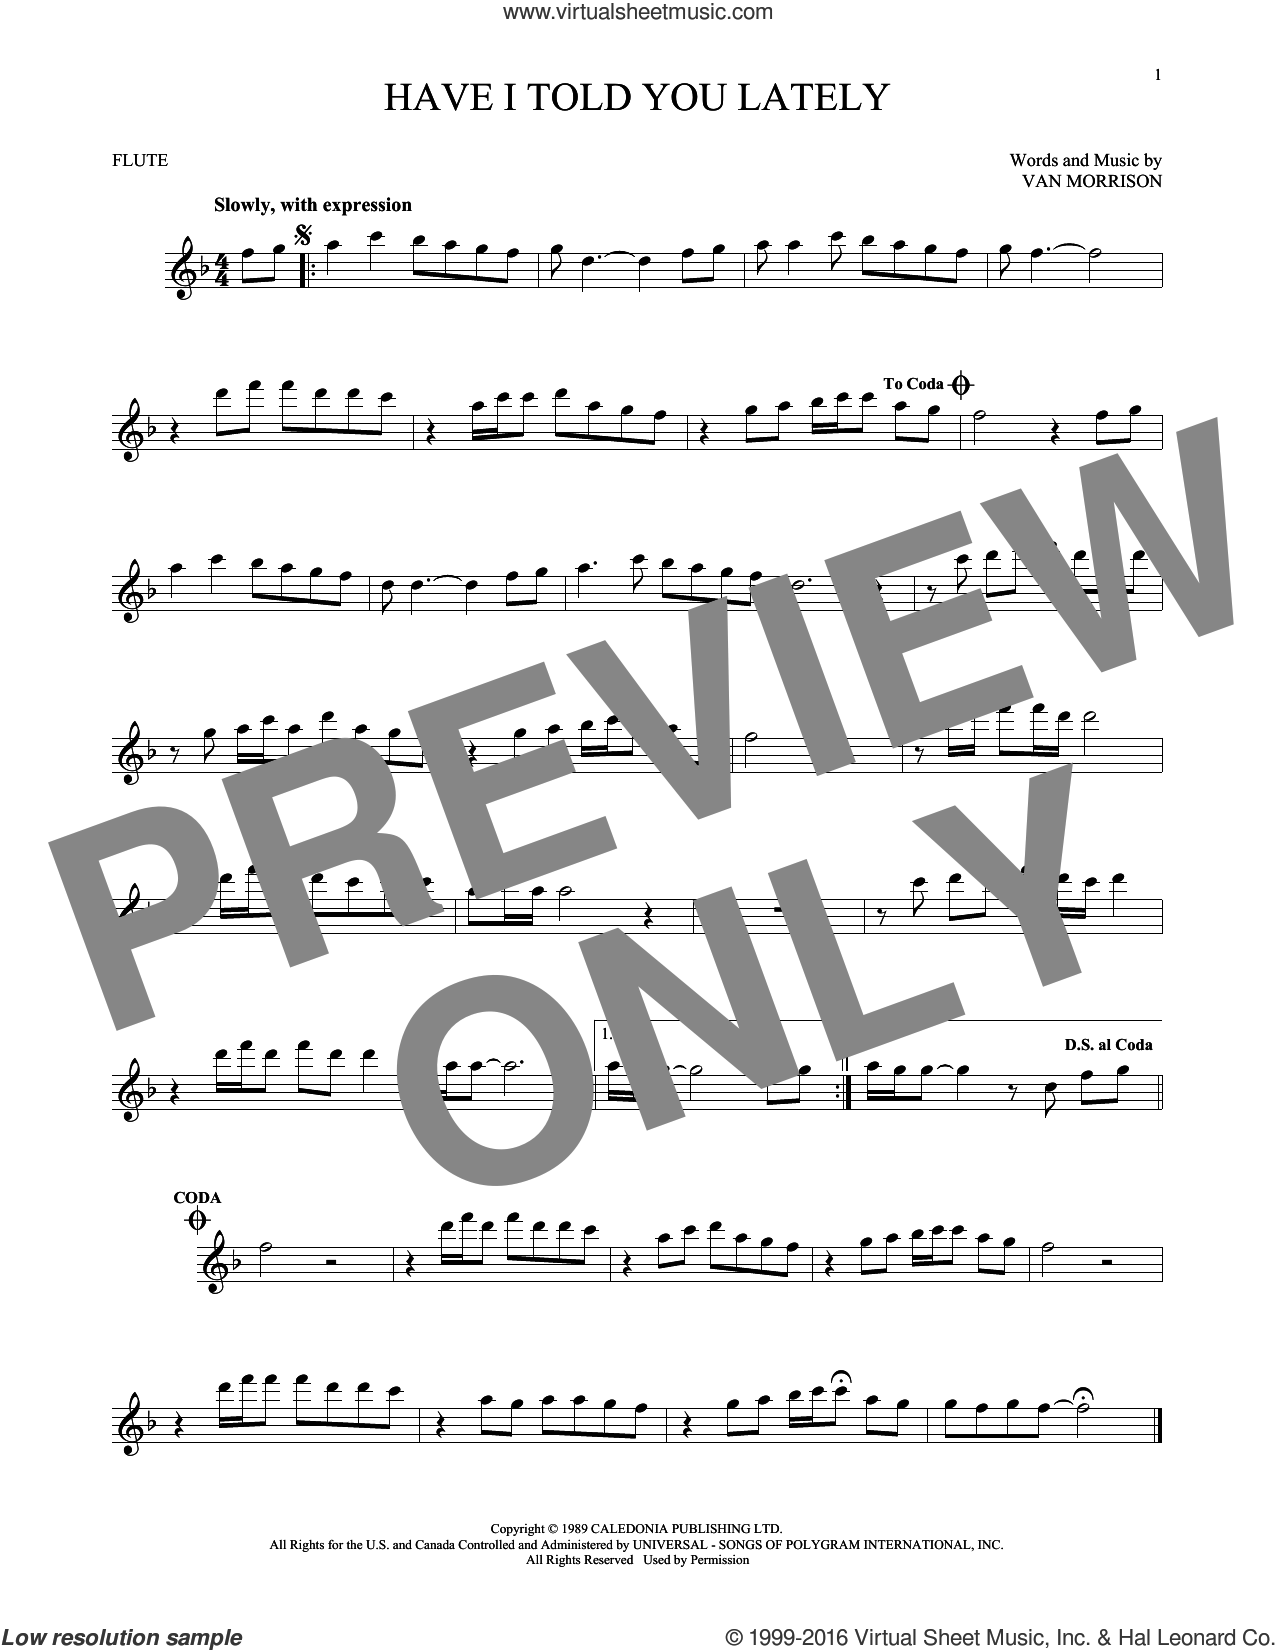 Have I Told You Lately sheet music for flute solo by Van Morrison. Score Image Preview.